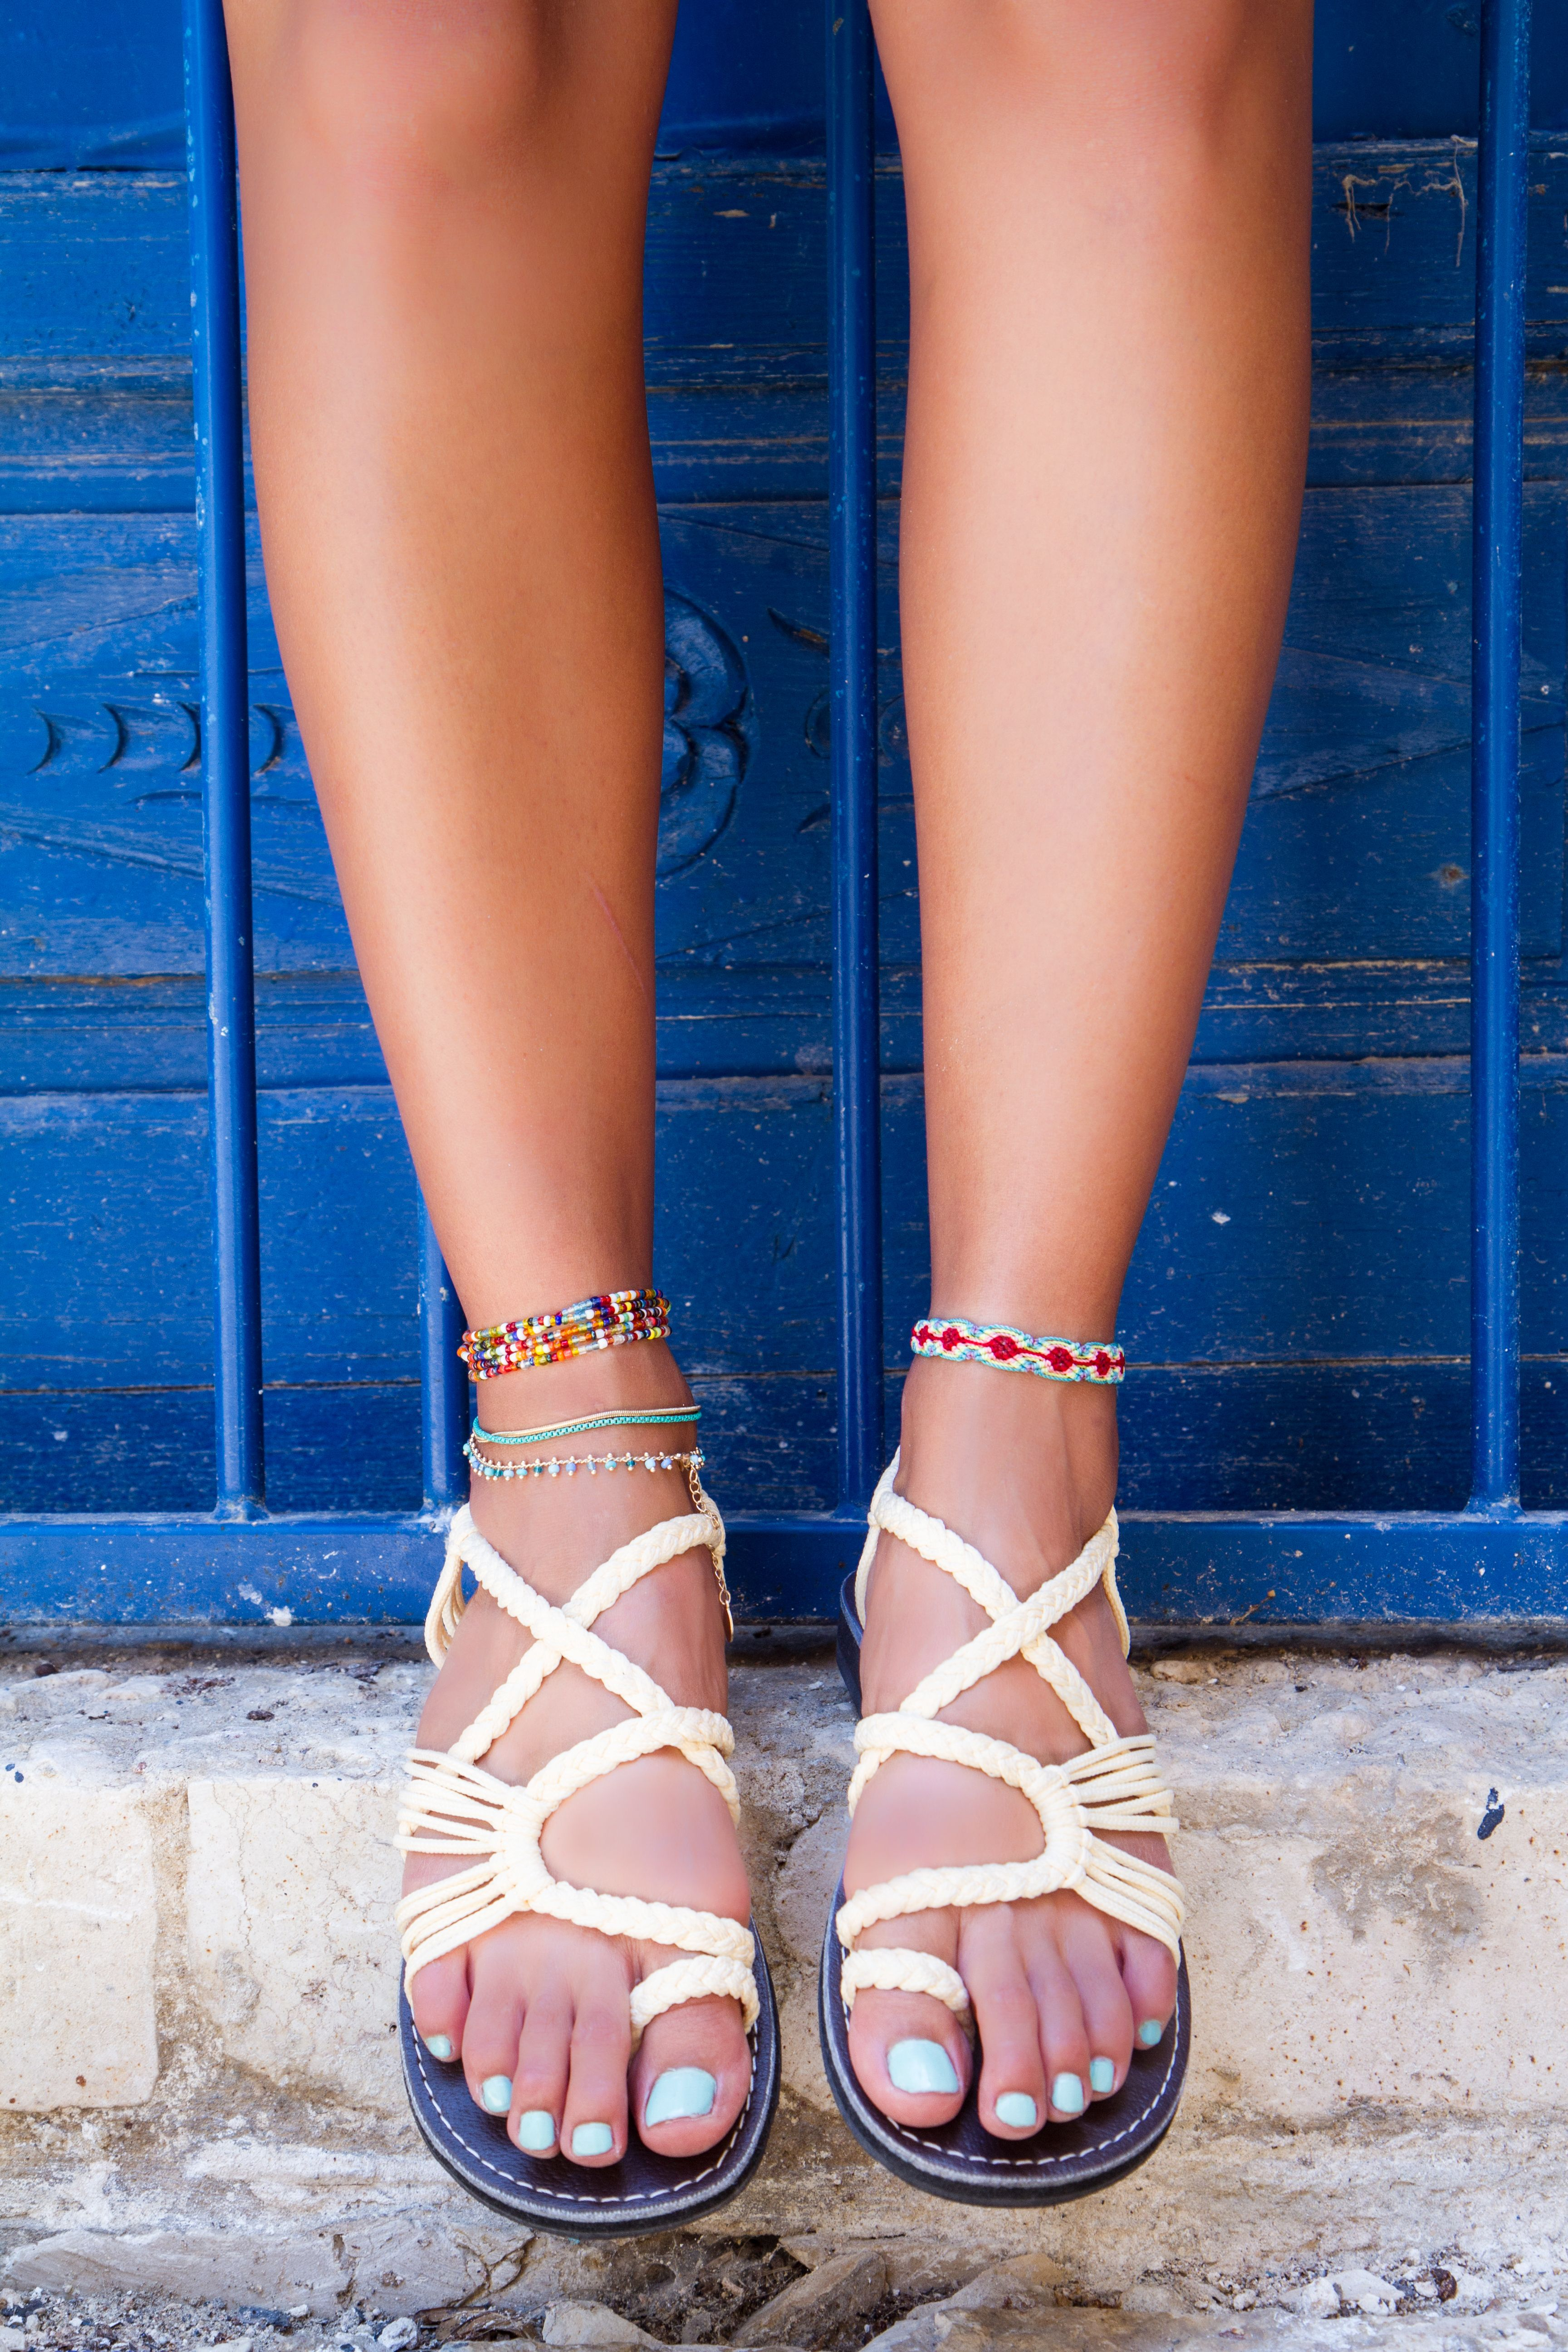 8a4c1d3fe This is your trendy and comfortable flat sandal for summer 2019. Our sandals  are affordable